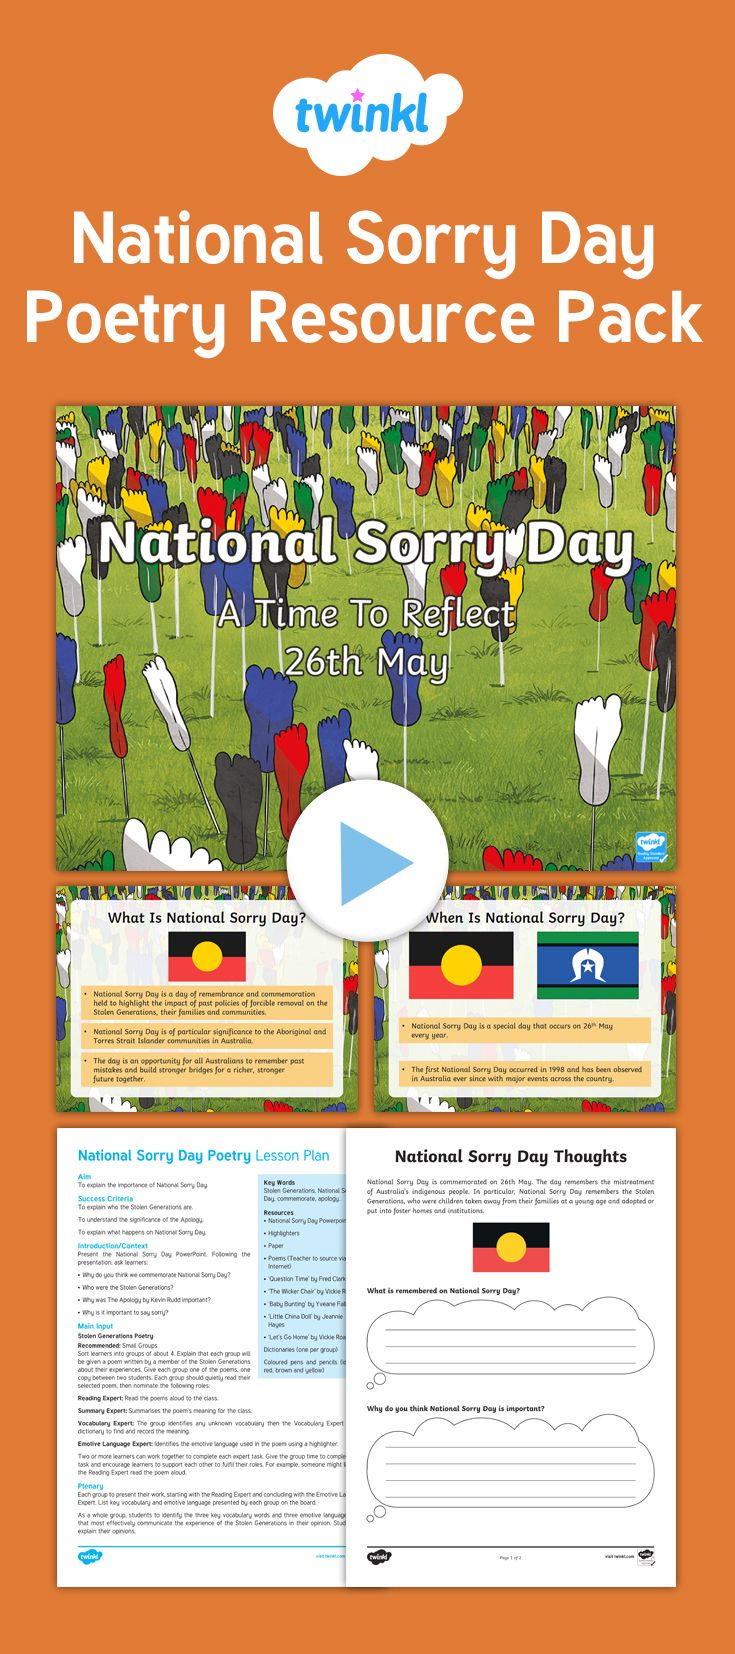 National Sorry Day is an Australia-wide observance held on May 26 each year. This day gives people the chance to come together and share the steps towards healing for the Stolen Generations, their families and communities. Stolen generations refer to Indigenous Australians who were forcibly removed from their families and communities. This Sorry Day and aboriginal poems resource pack lets your class explore this topic through poetry.